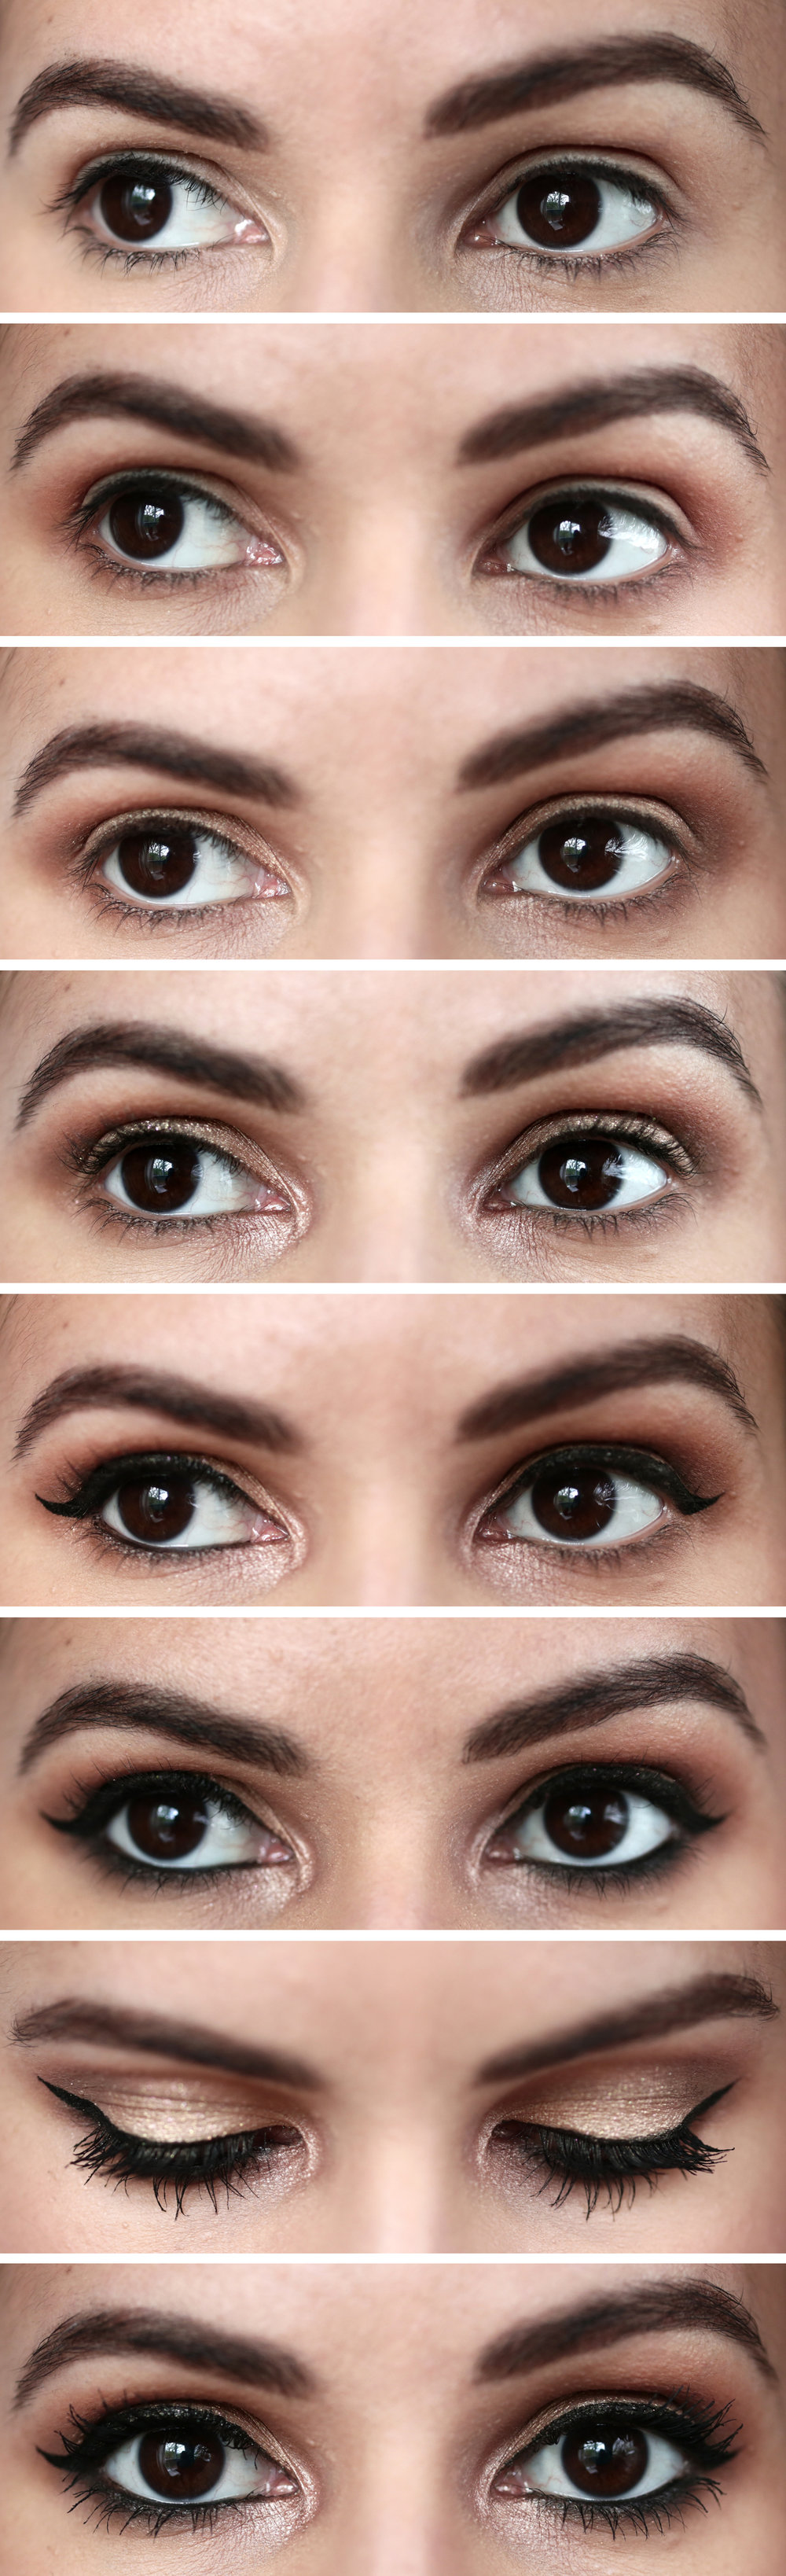 urban decay nocturnal palette tutorial and review.jpg